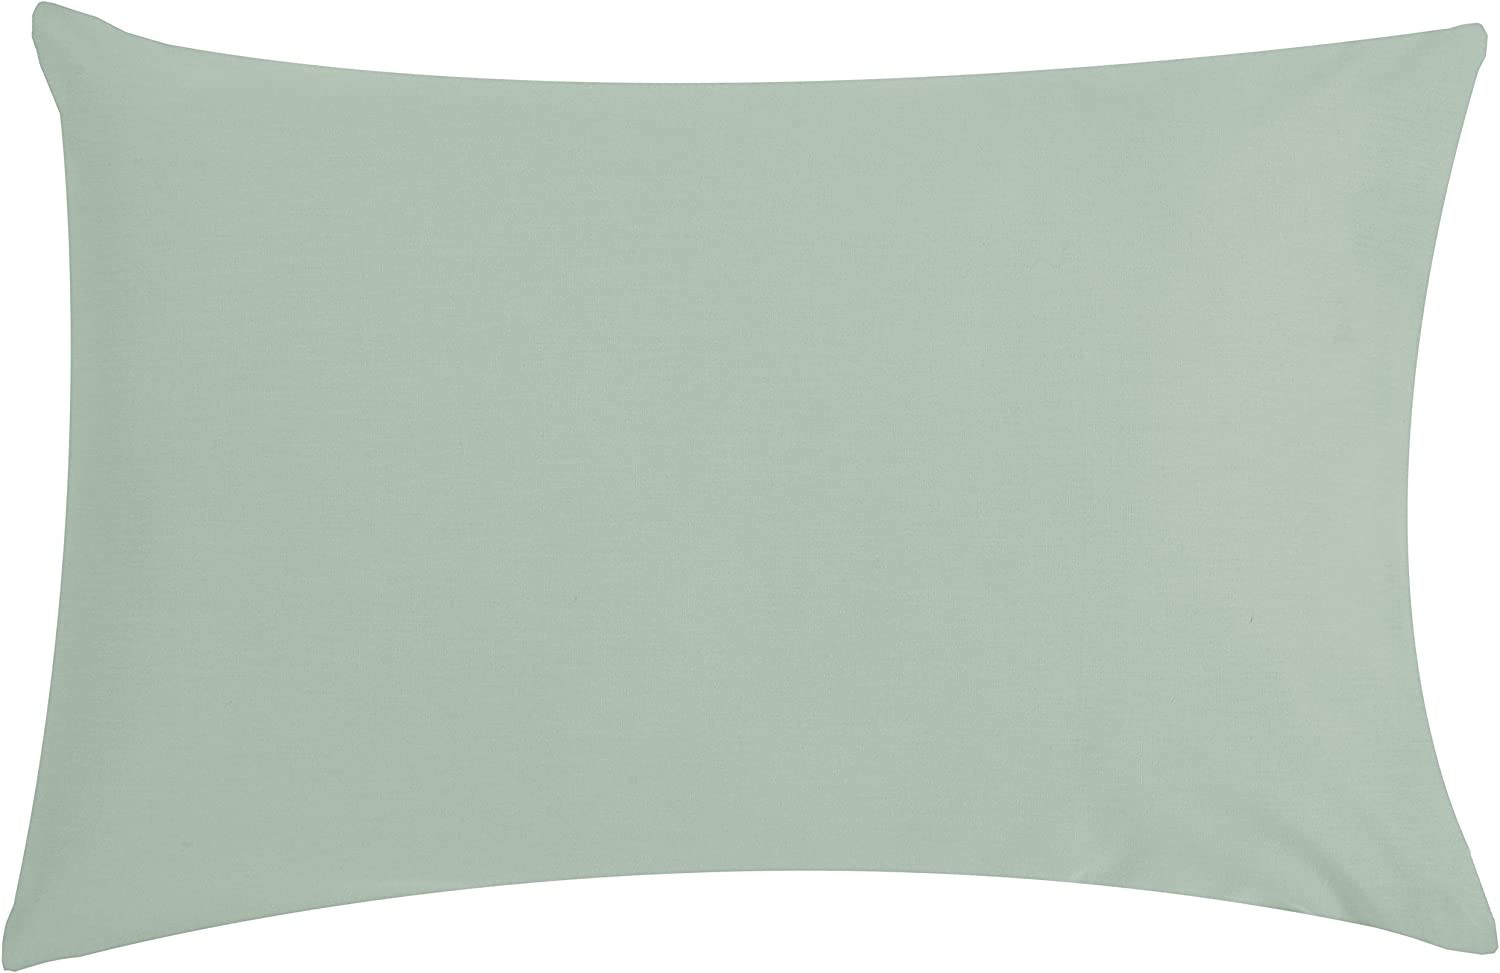 40x60 cm Gots and Oeko-tex certified Plain Cot Bed Pillow case with Envelope Closure Little Stars Ptit Basile Baby toddler Pillowcase cover 100/% soft Organic Cotton